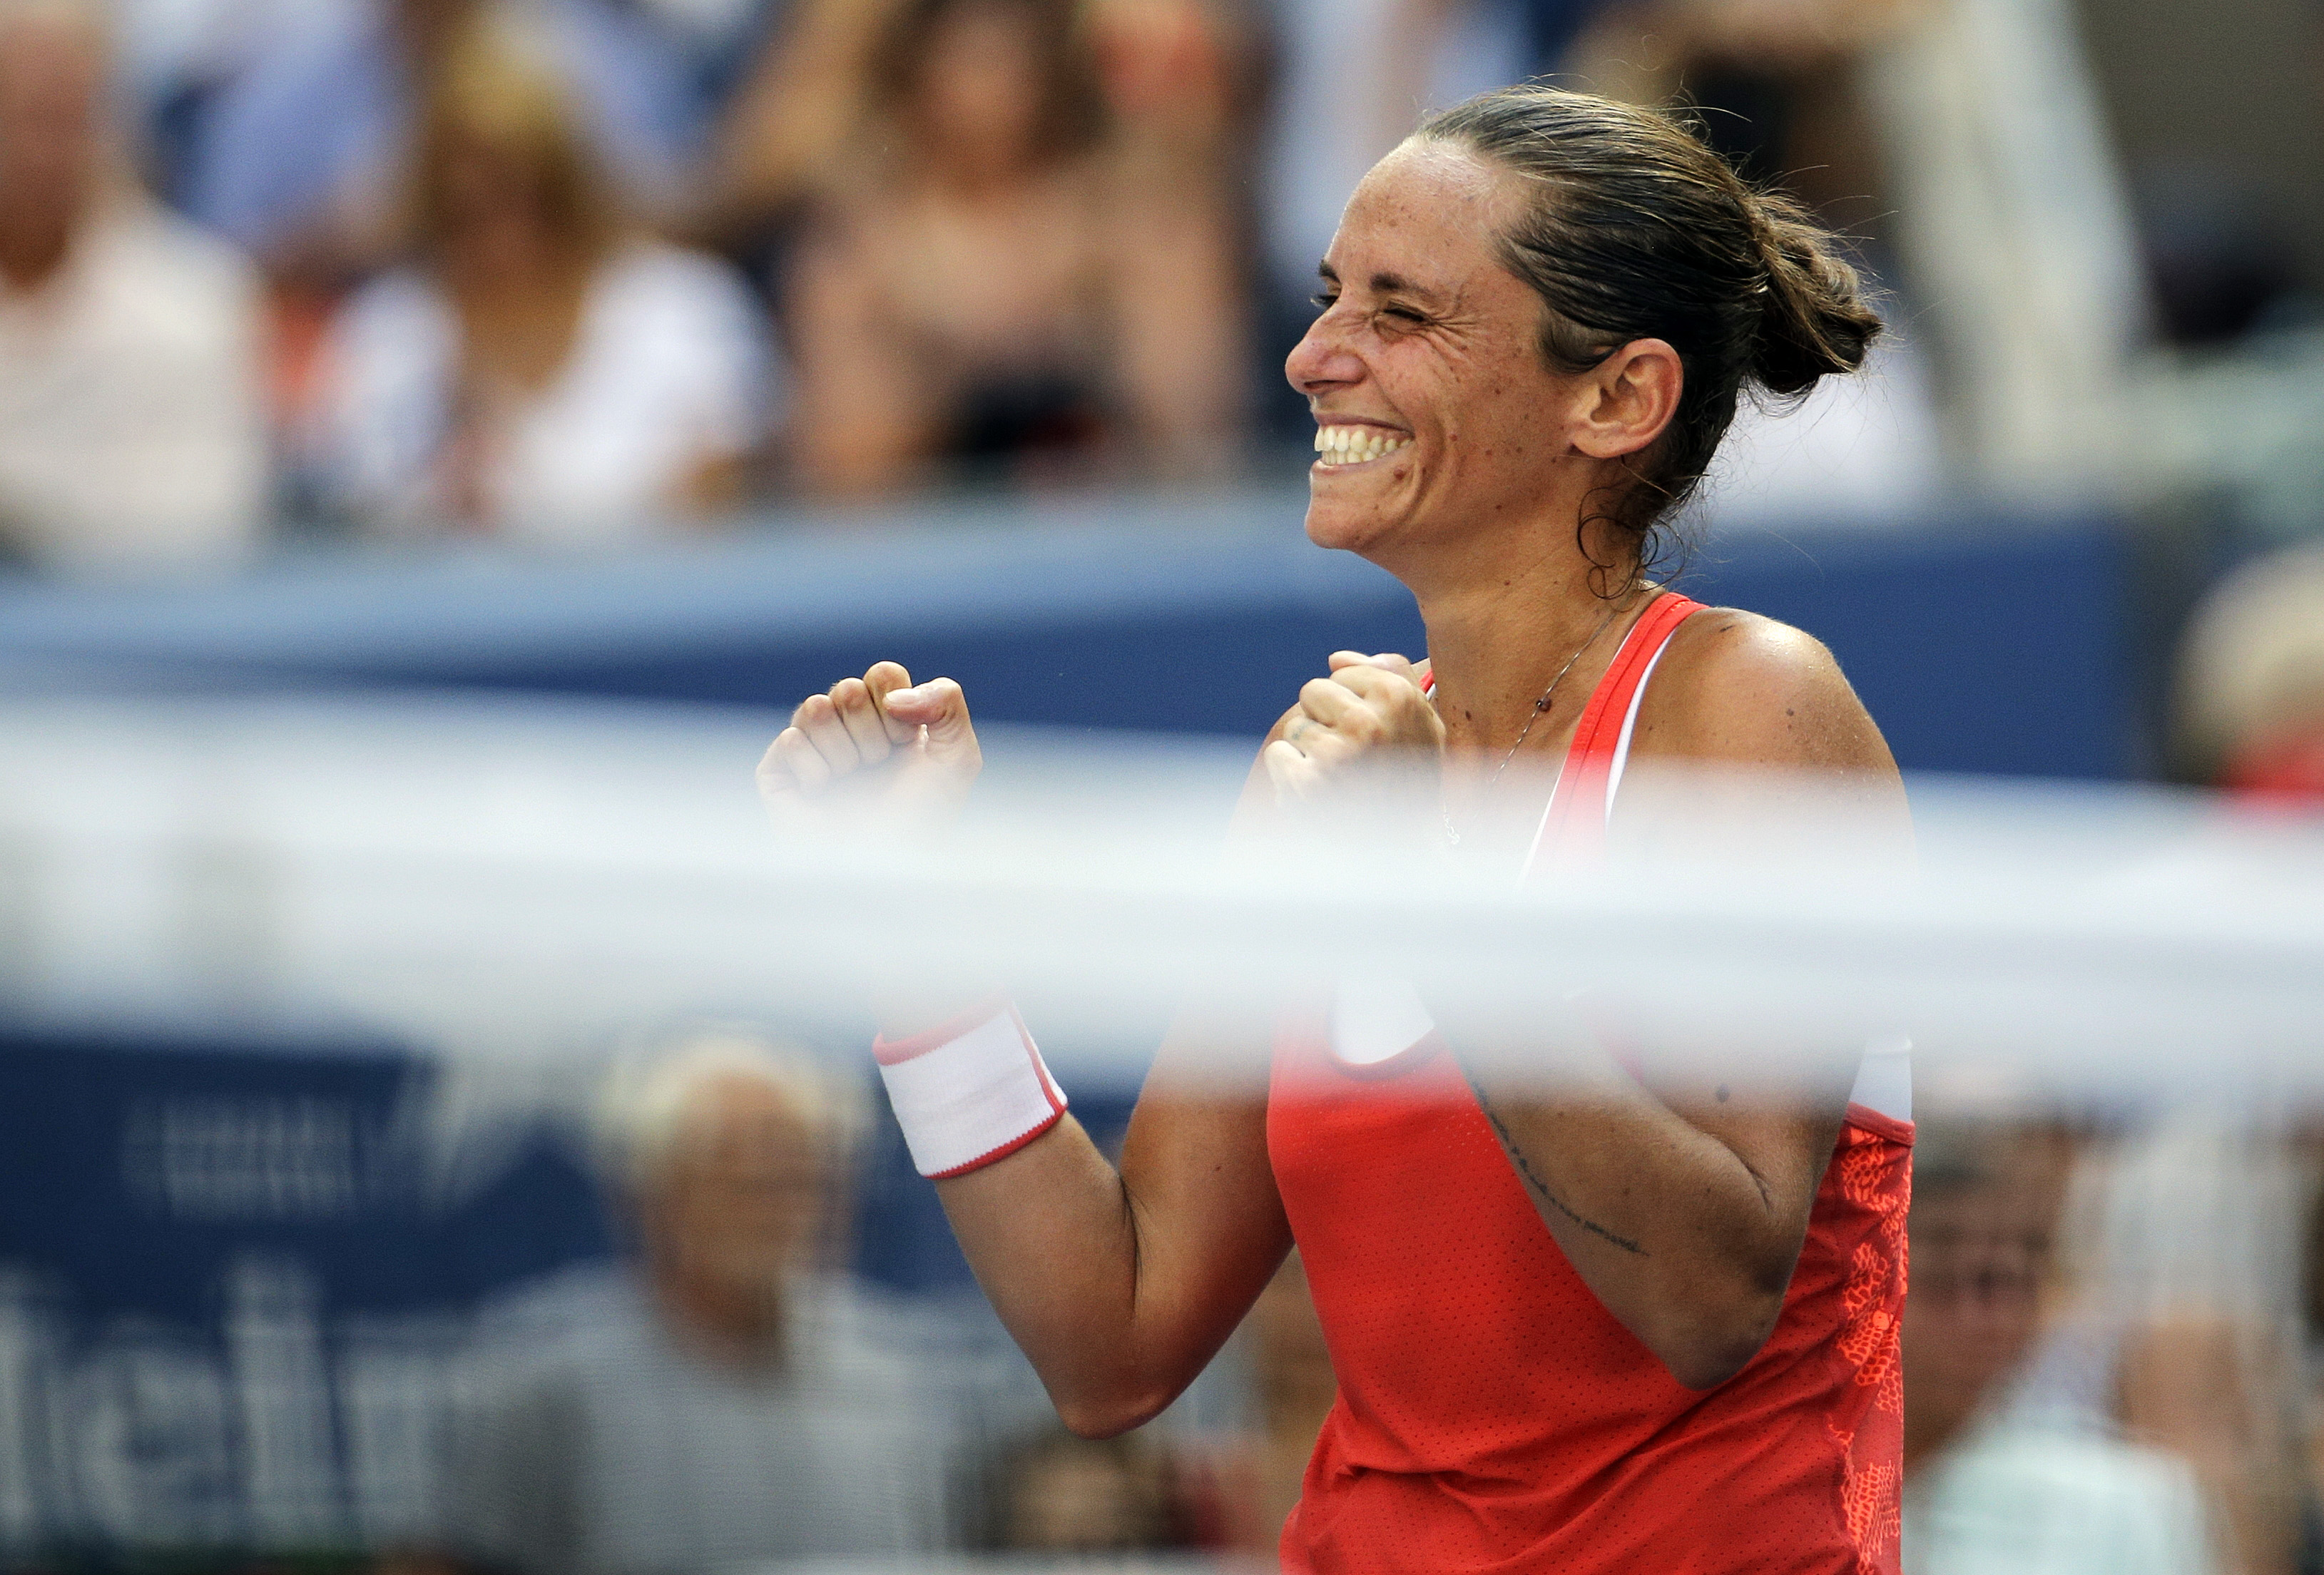 Roberta Vinci, of Italy, reacts after defeating Kristina Mladenovic, of France, during a quarterfinal match at the U.S. Open tennis tournament, Tuesday, Sept. 8, 2015, in New York. (AP Photo/David Goldman)